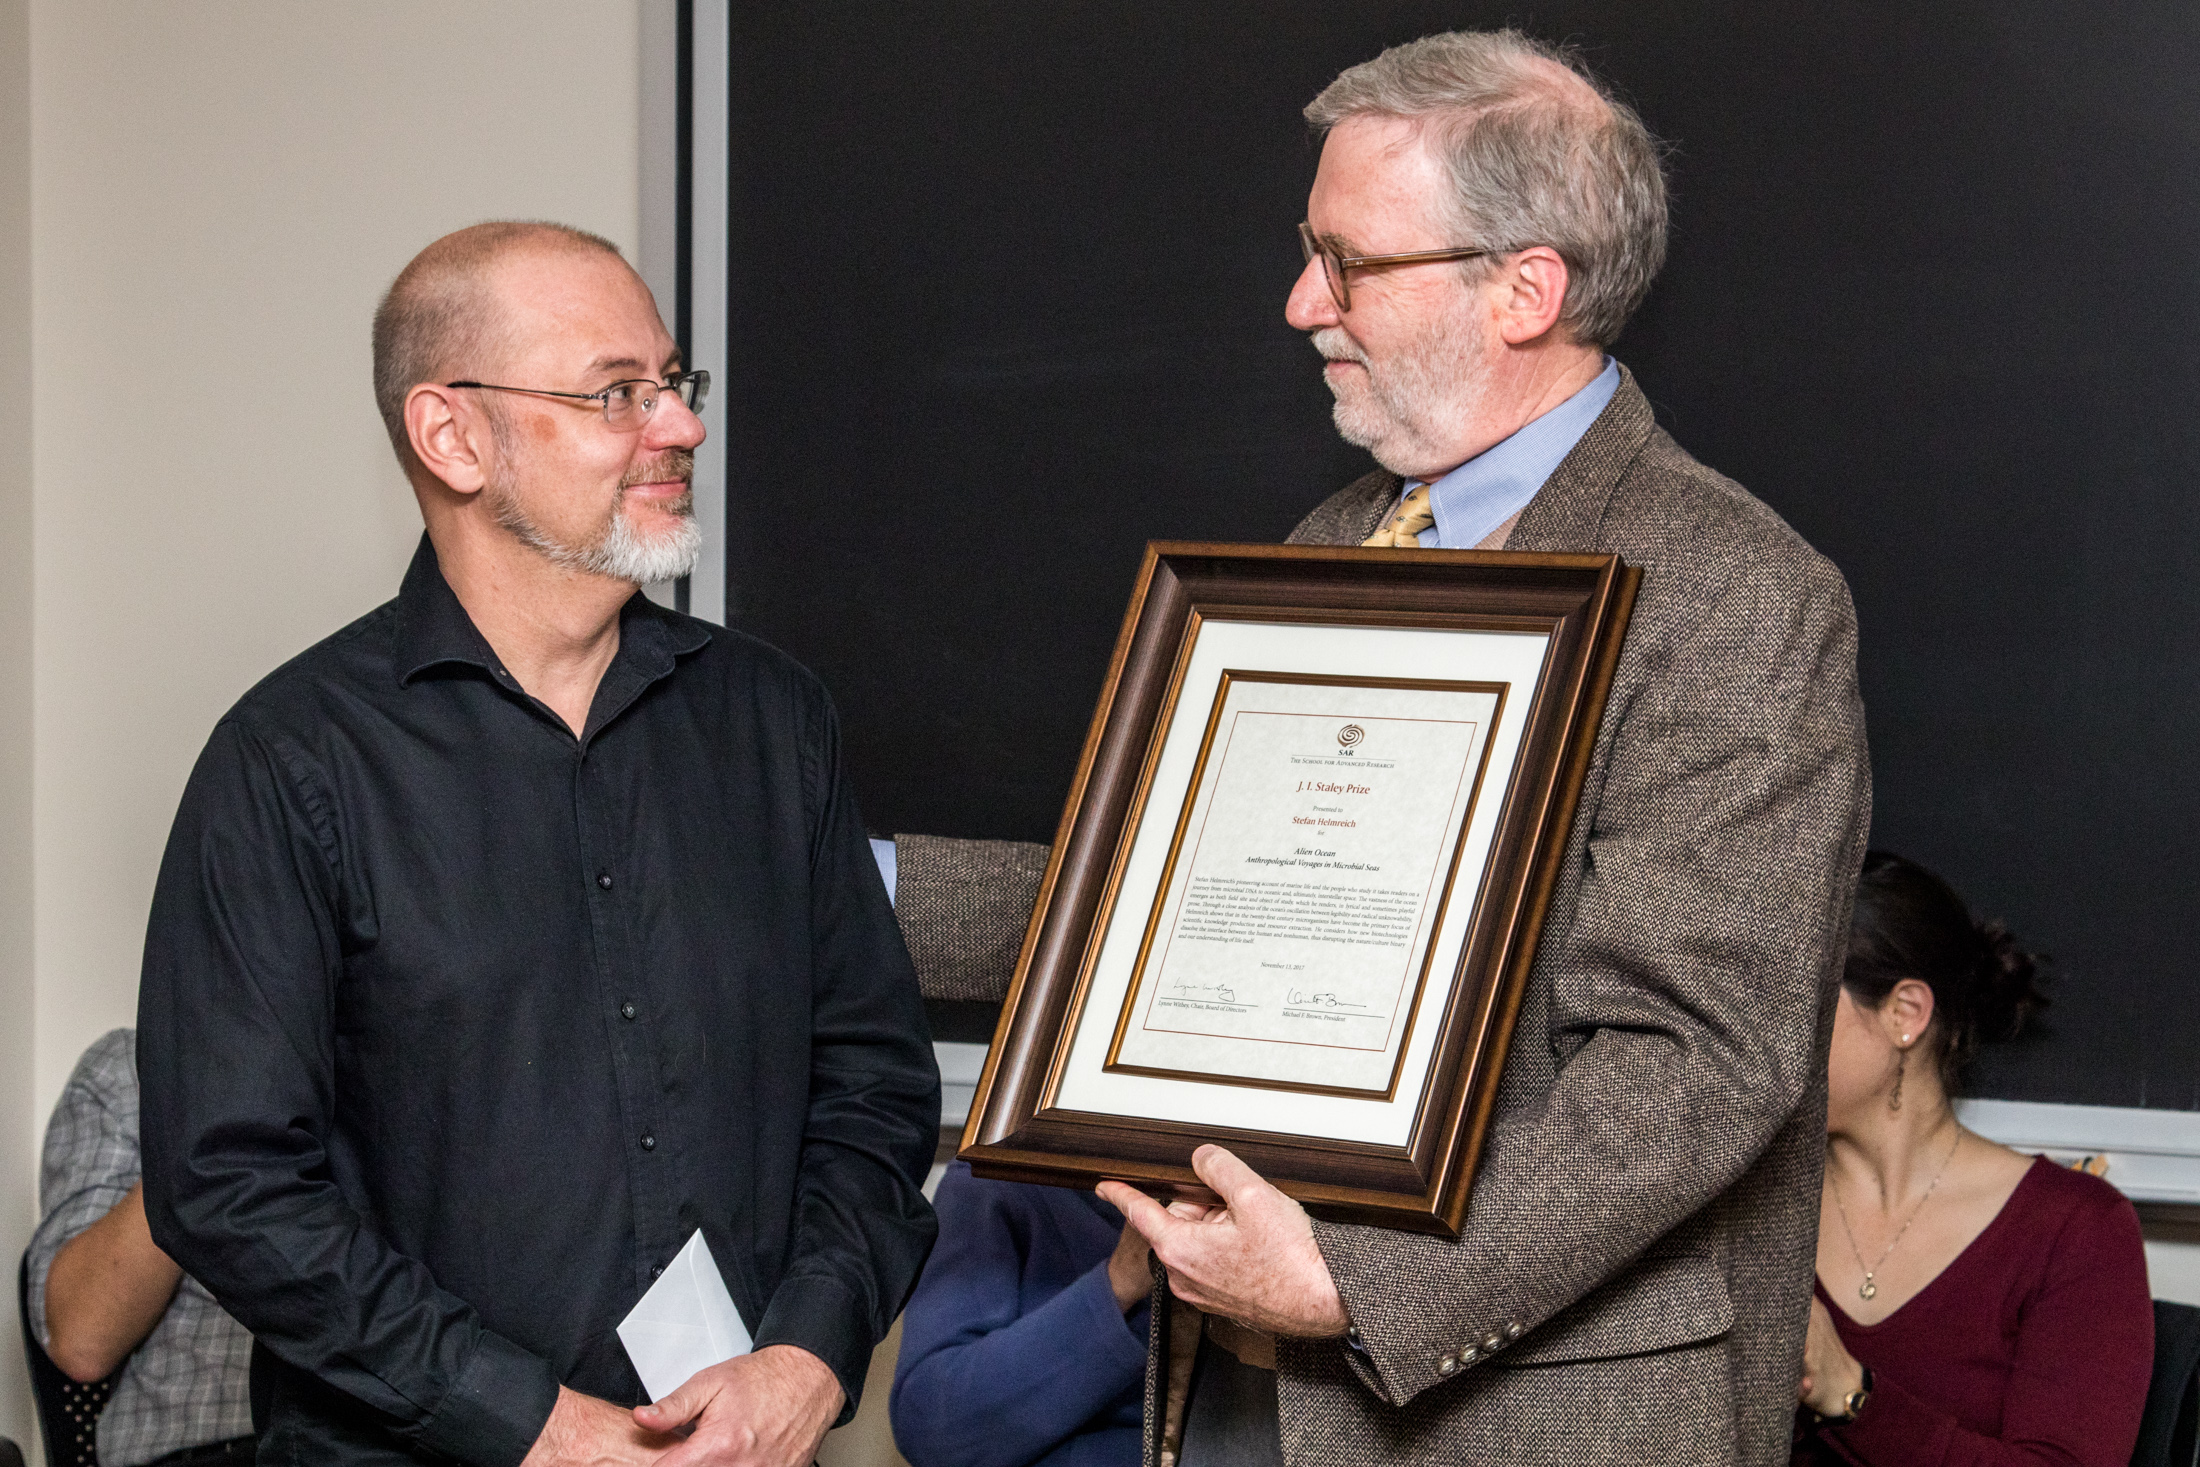 SAR President Michael Brown and Professor Stefan Helmreich